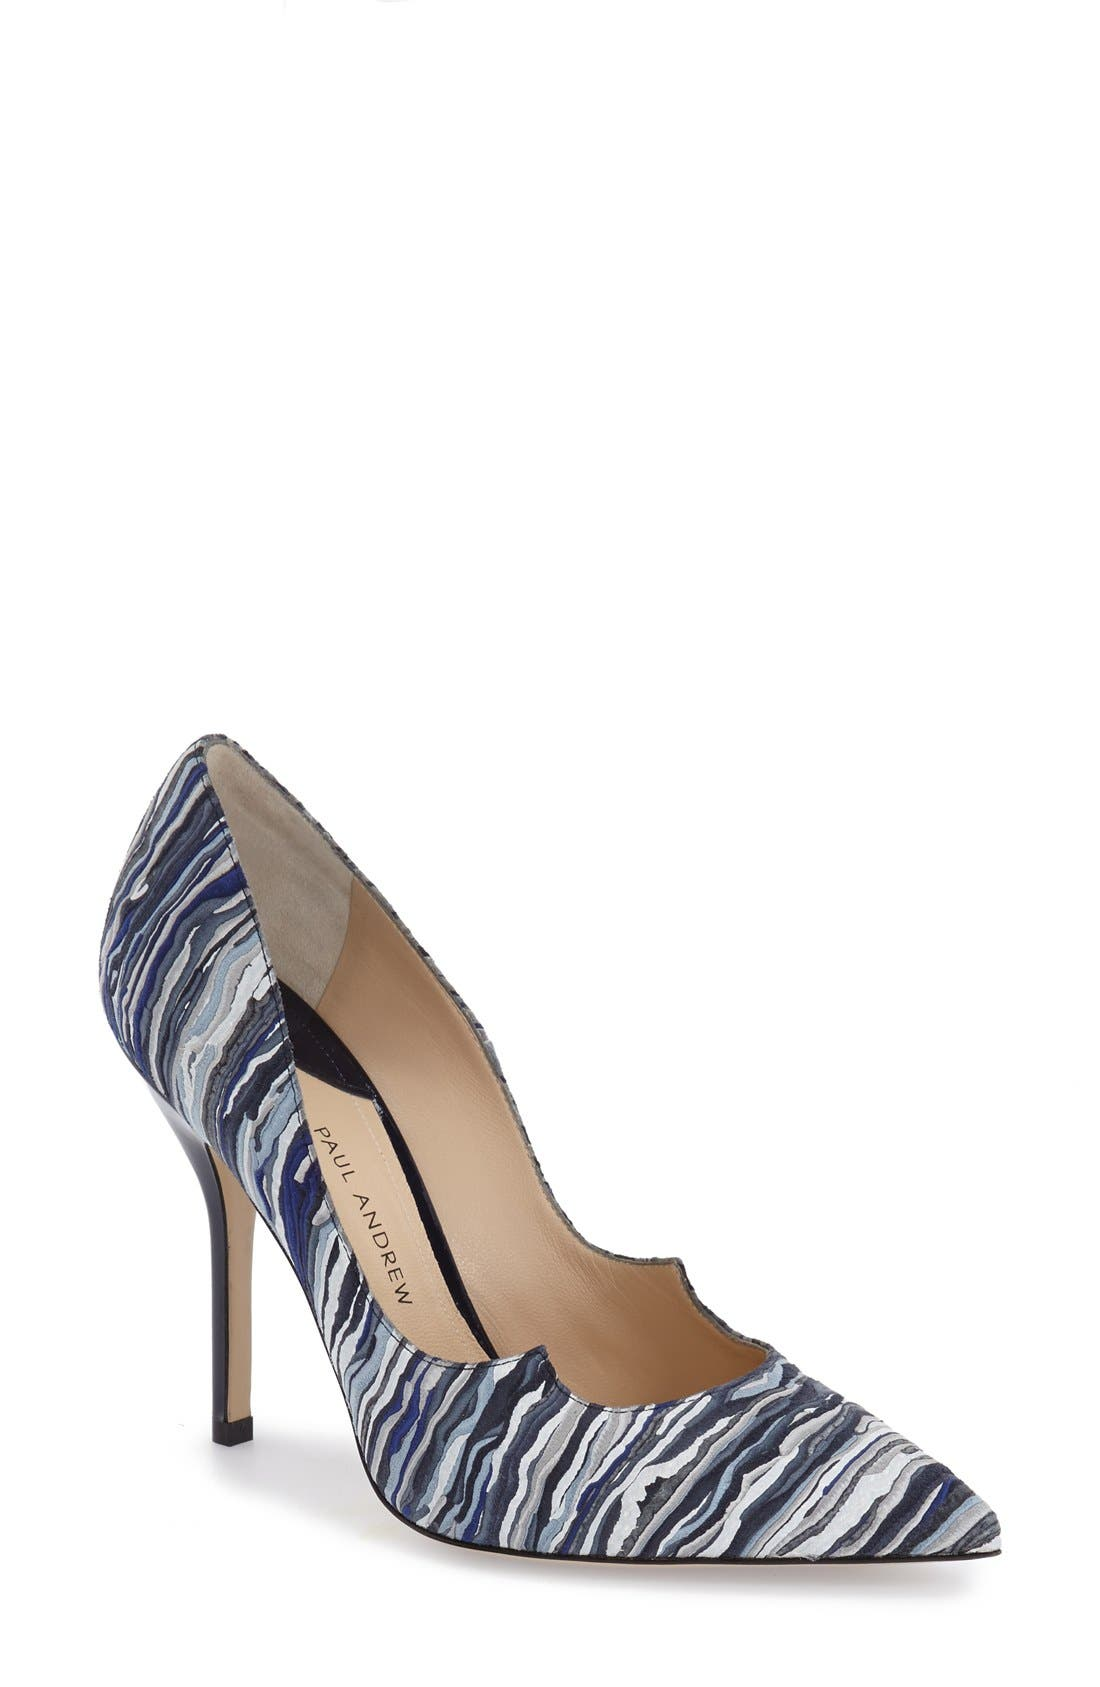 Main Image - Paul Andrew 'Zenadia' Pump (Women)